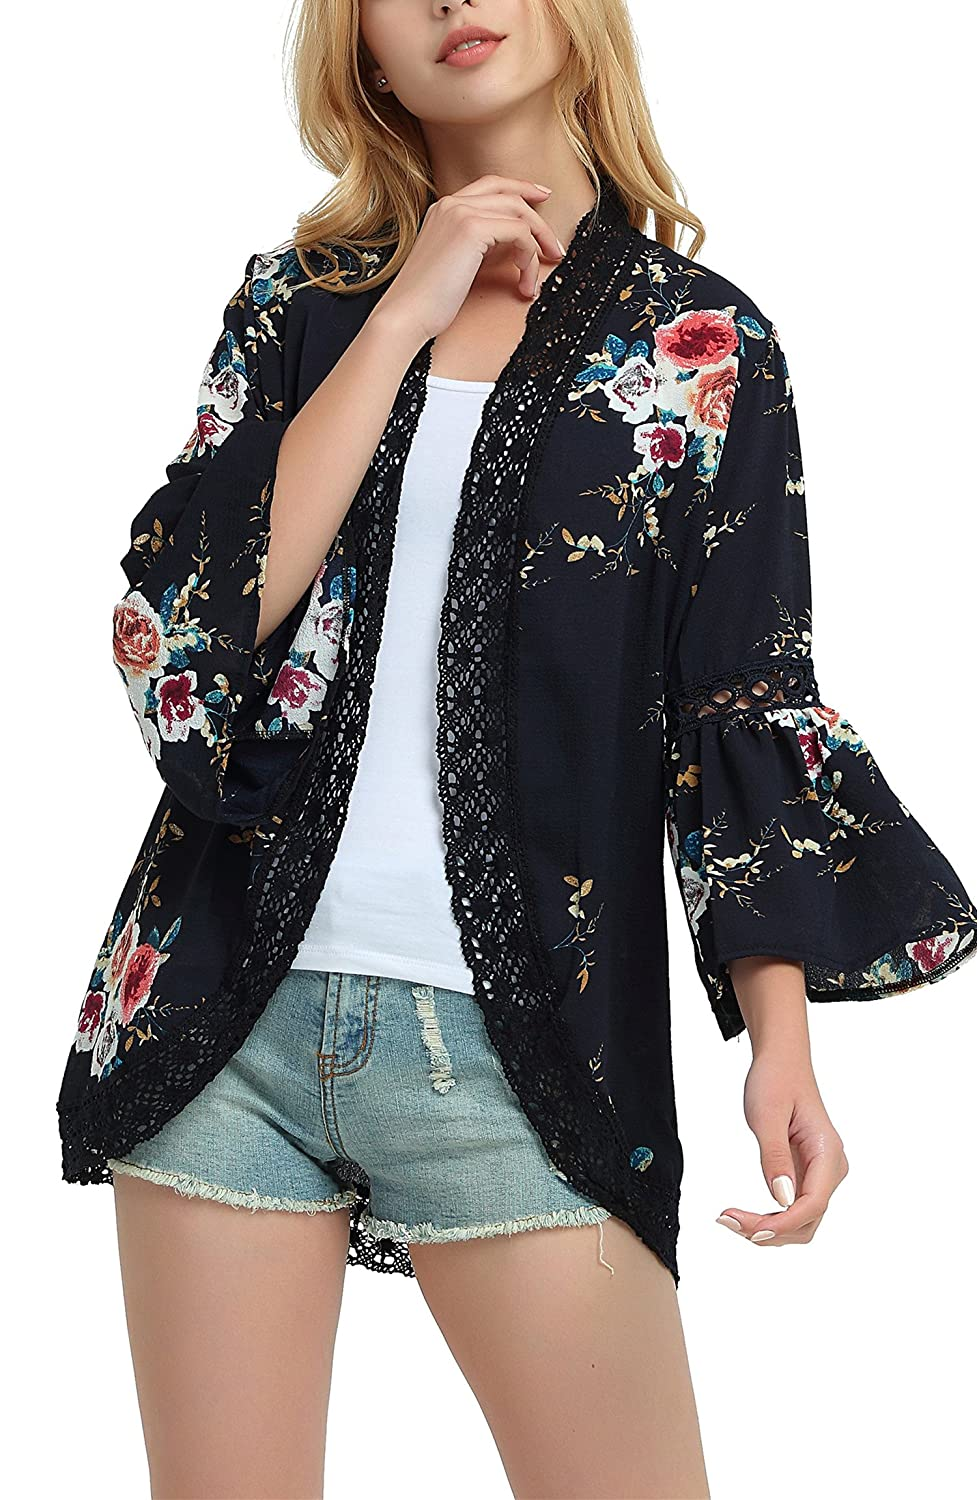 Steven McQueen Women's S-3XL Boho Bell Sleeve Cardigans Floral Lace Cover up Tops